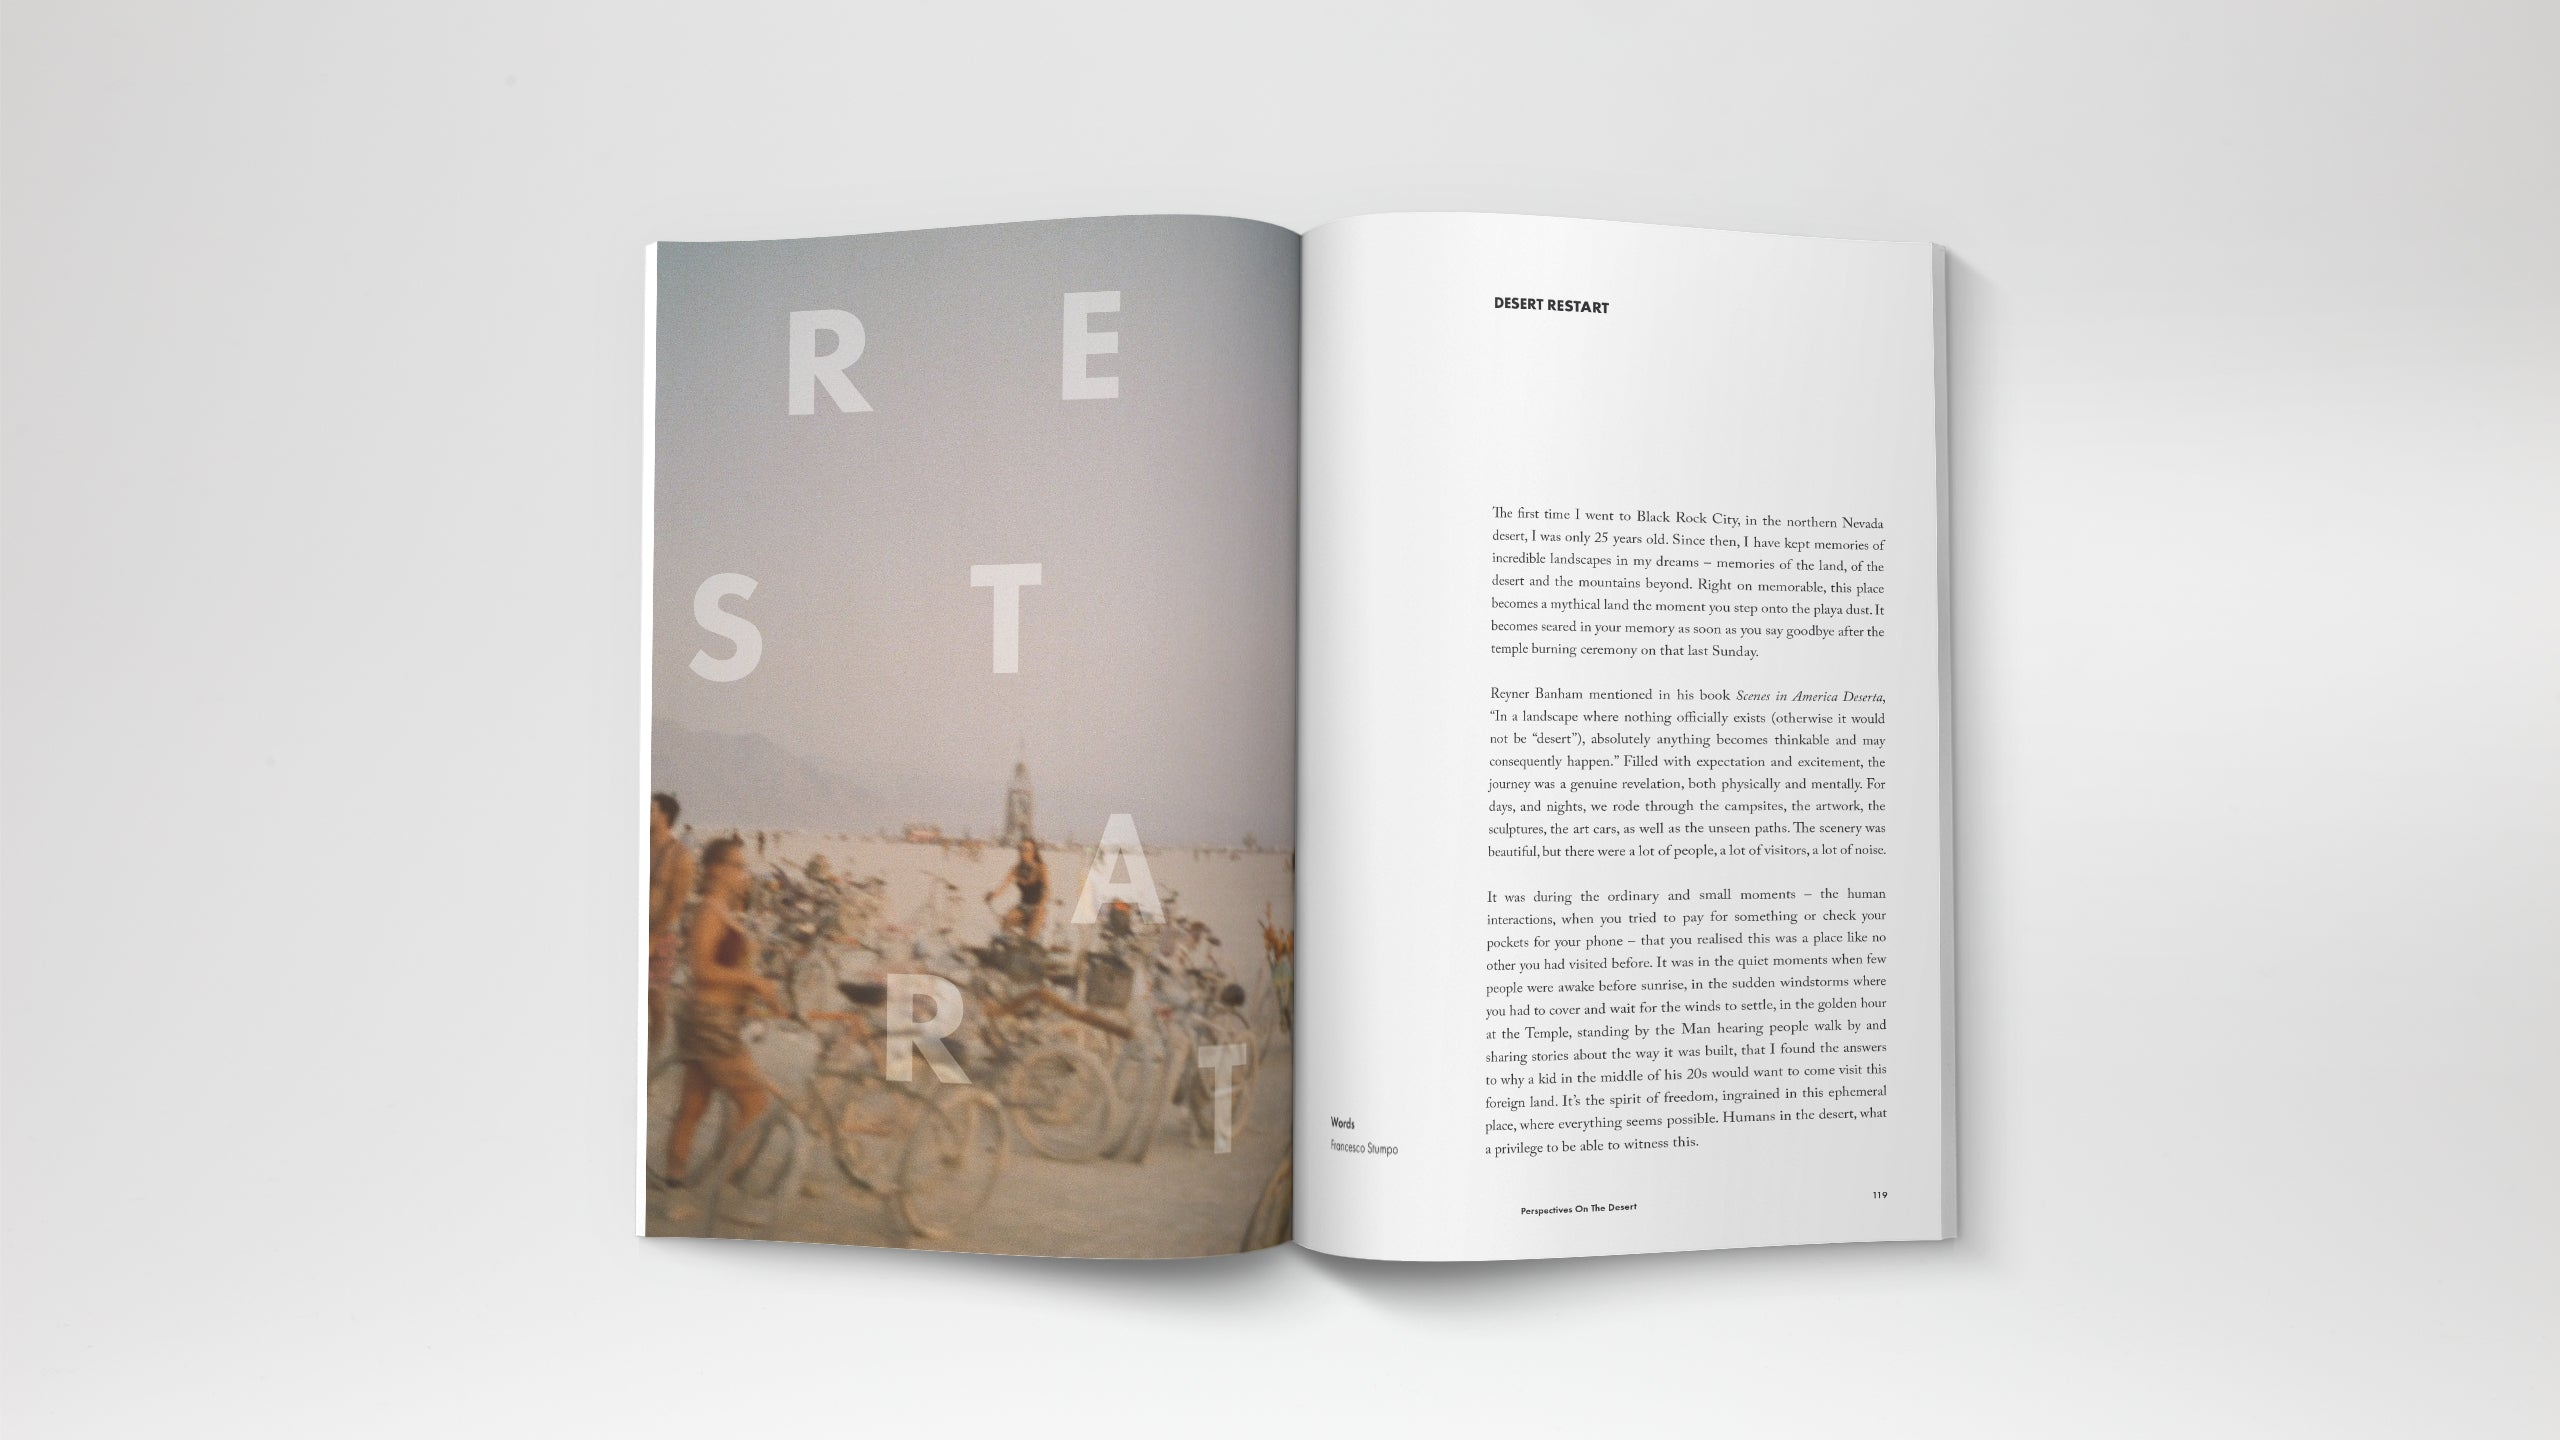 A travel magazine based in Kuala Lumpur Malaysia. Story from Burning Man experience in Nevada.